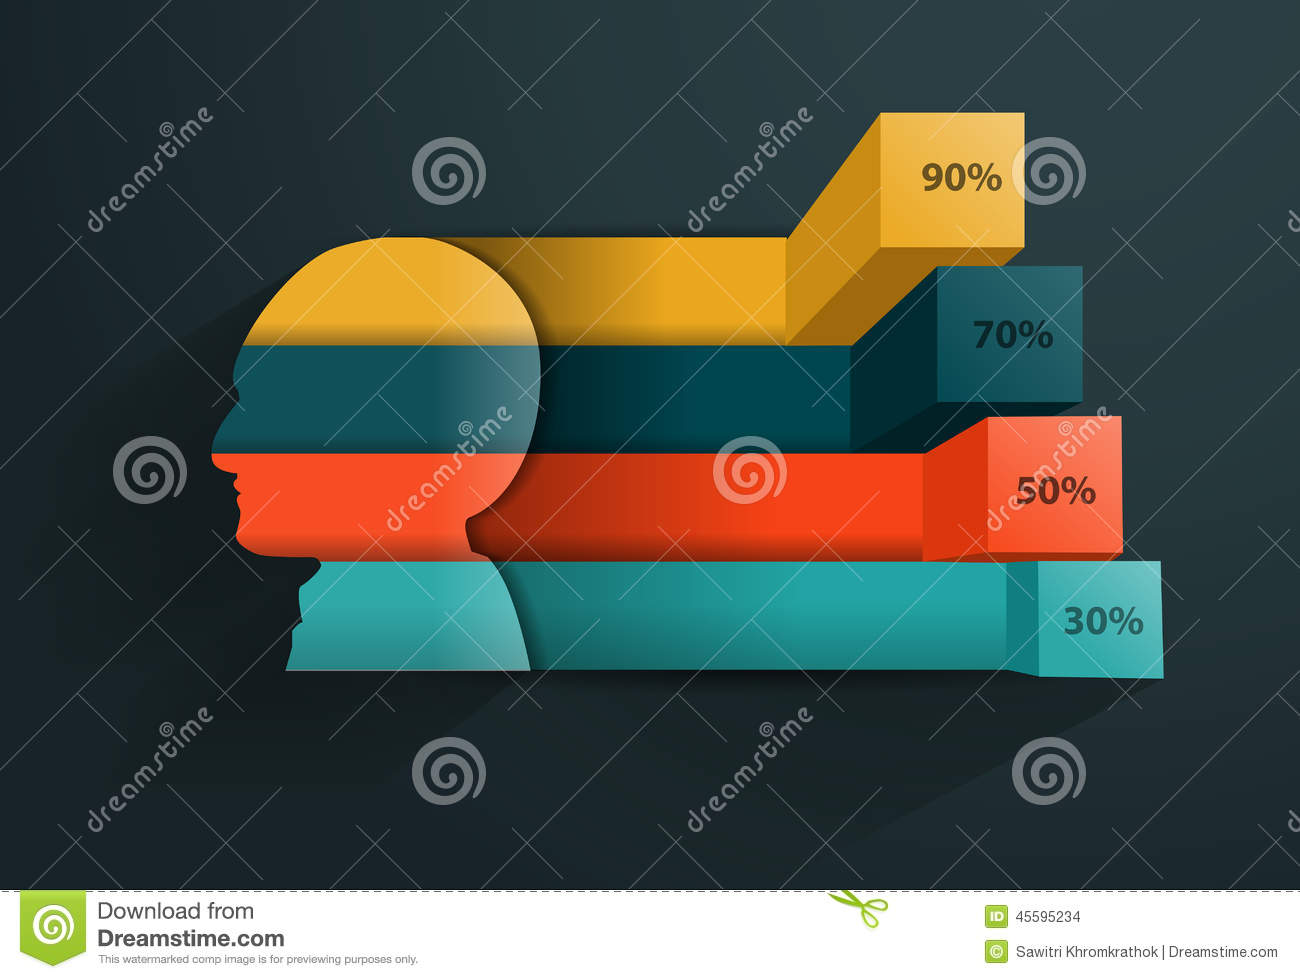 human brain diagram label plate tectonics subduction vector creative head silhouette banner stock - image: 45595234